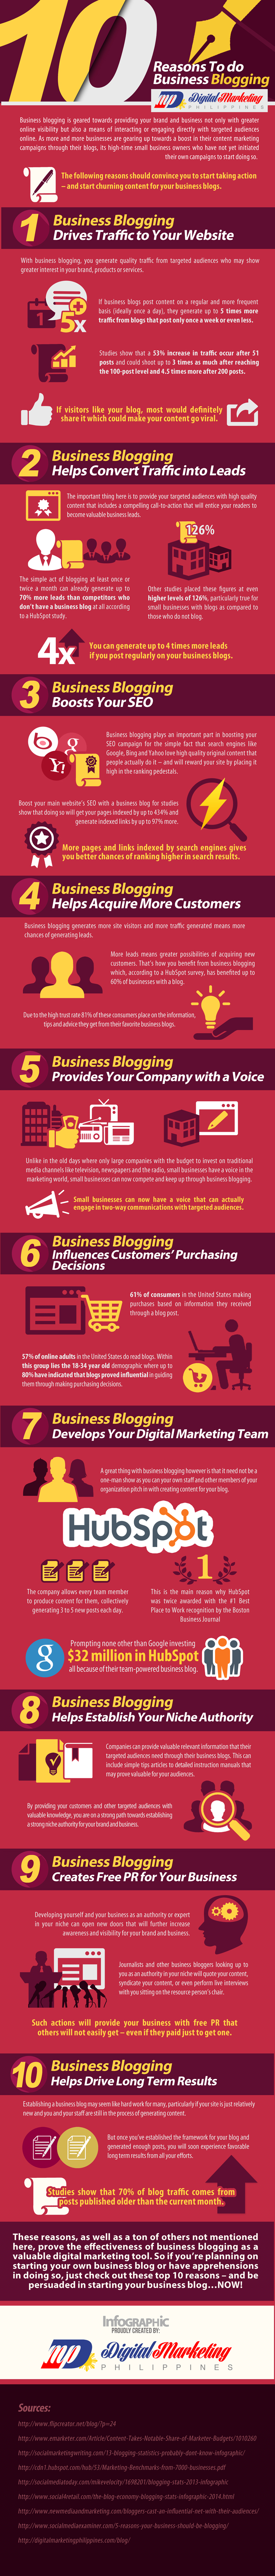 Top 10 Reasons to do Business Blogging (Infographic) - An Infographic from Digital Marketing Philippines